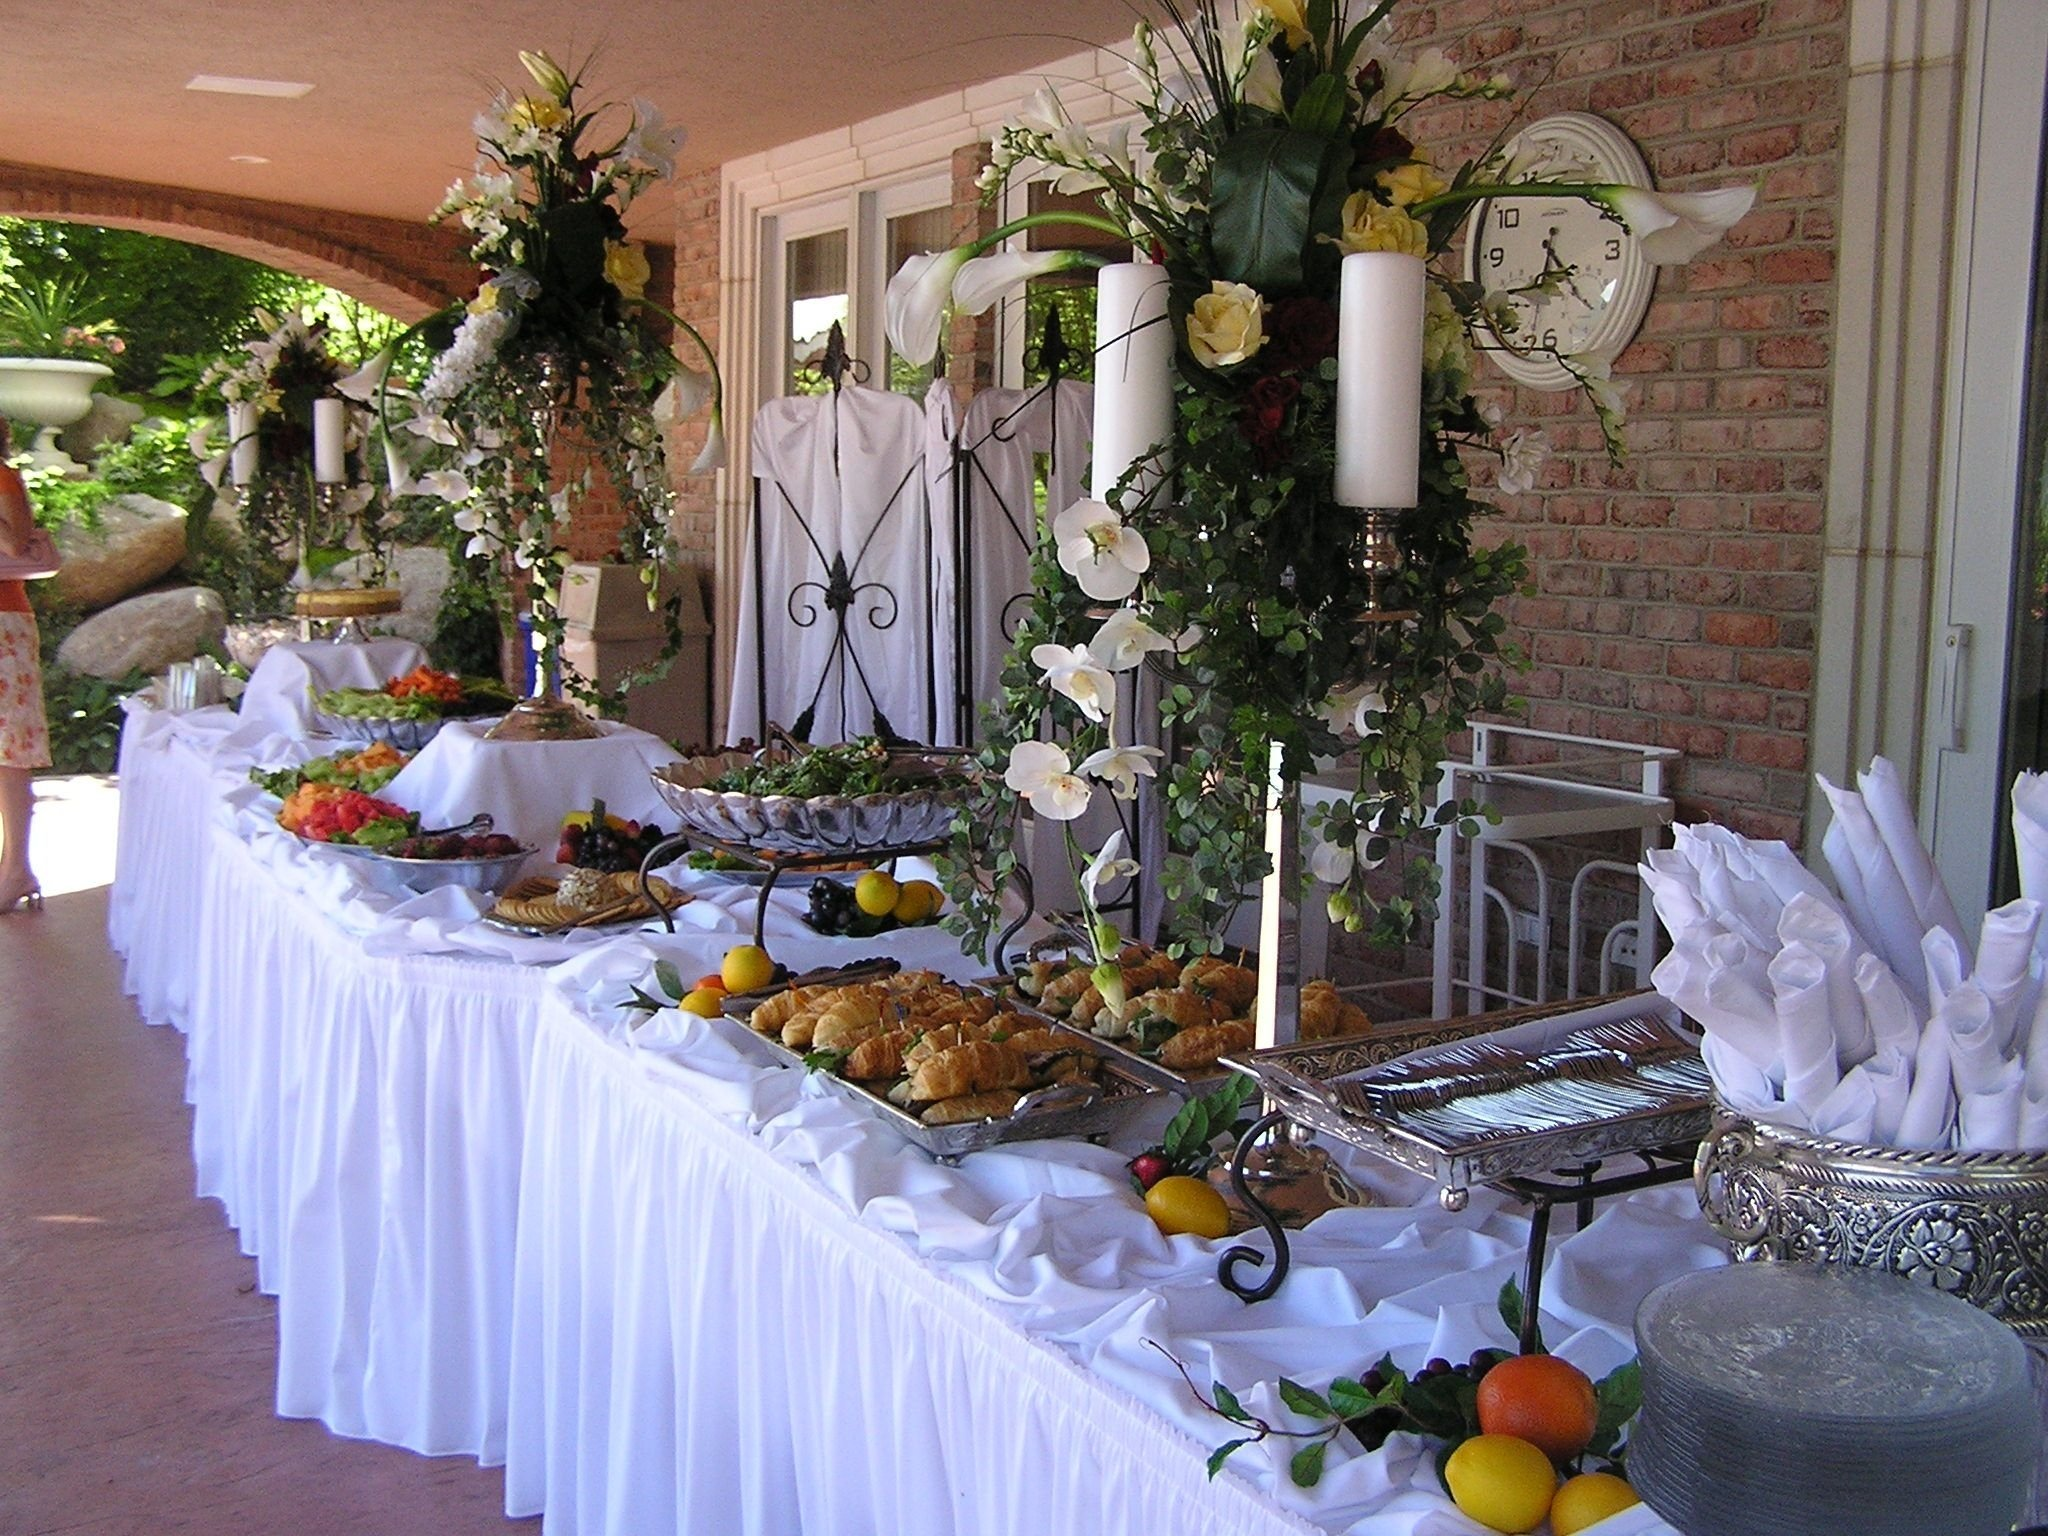 christmas buffet table decorations pictures | white banquet table